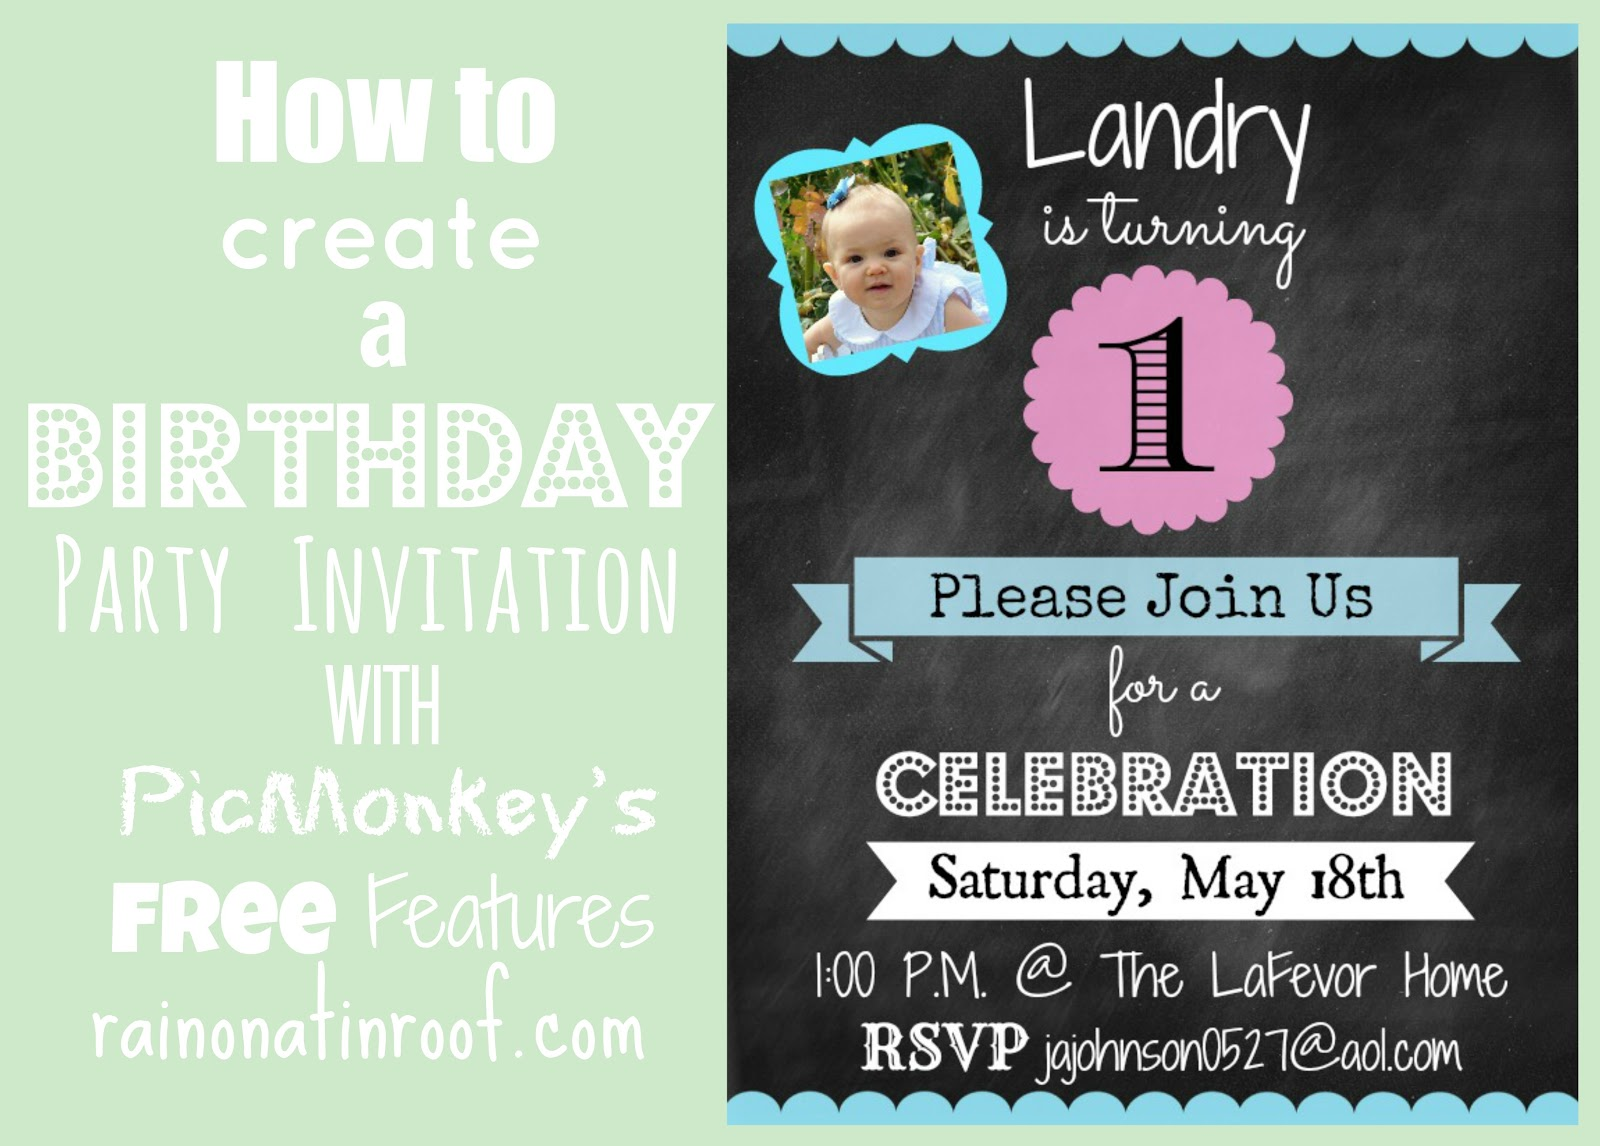 How to create an invitation in picmonkey how to create an invitation in picmonkey rainonatinroof invitation party filmwisefo